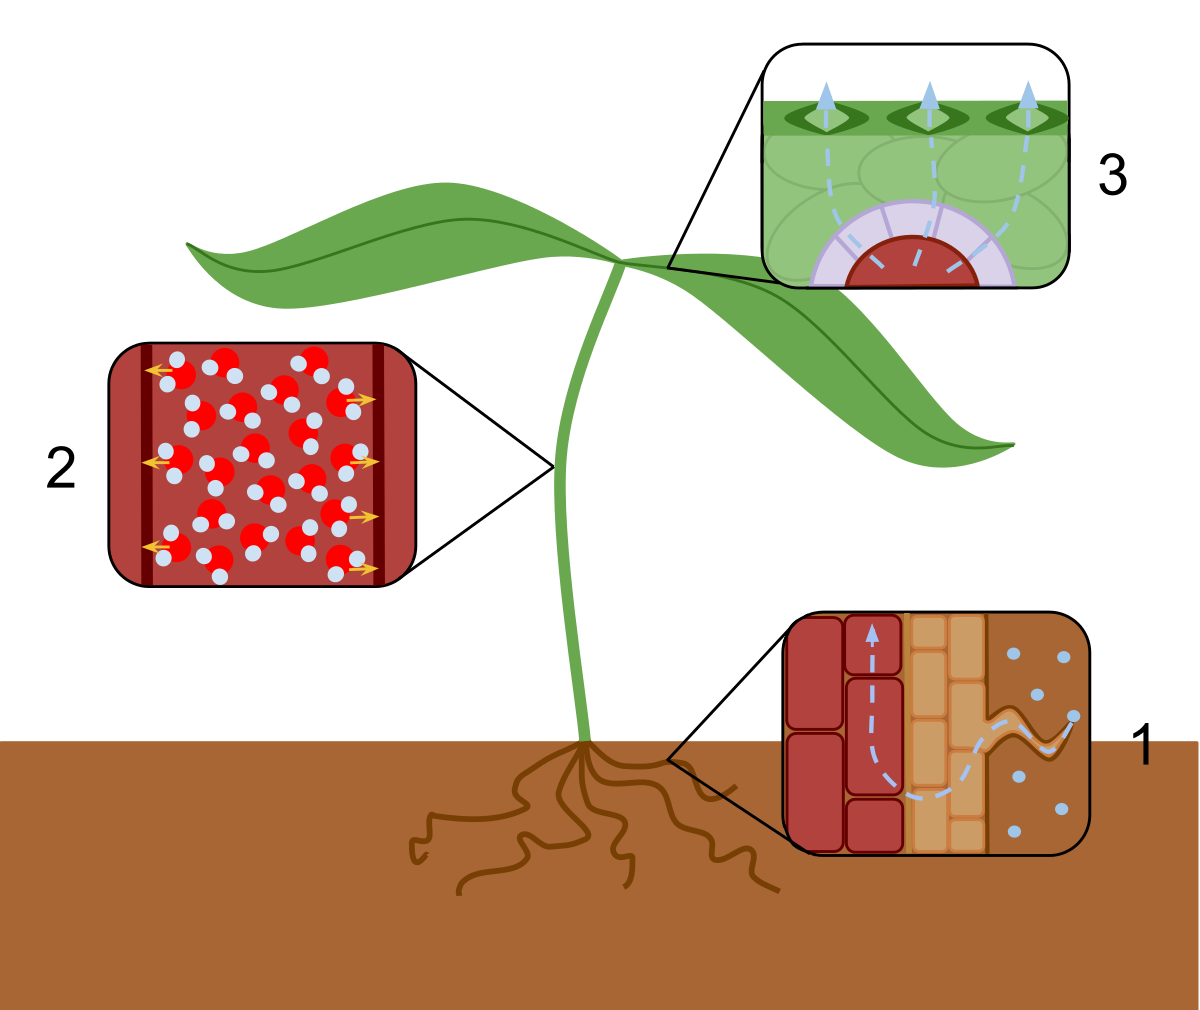 Evaporation drawing environmental science. Transpiration wikipedia